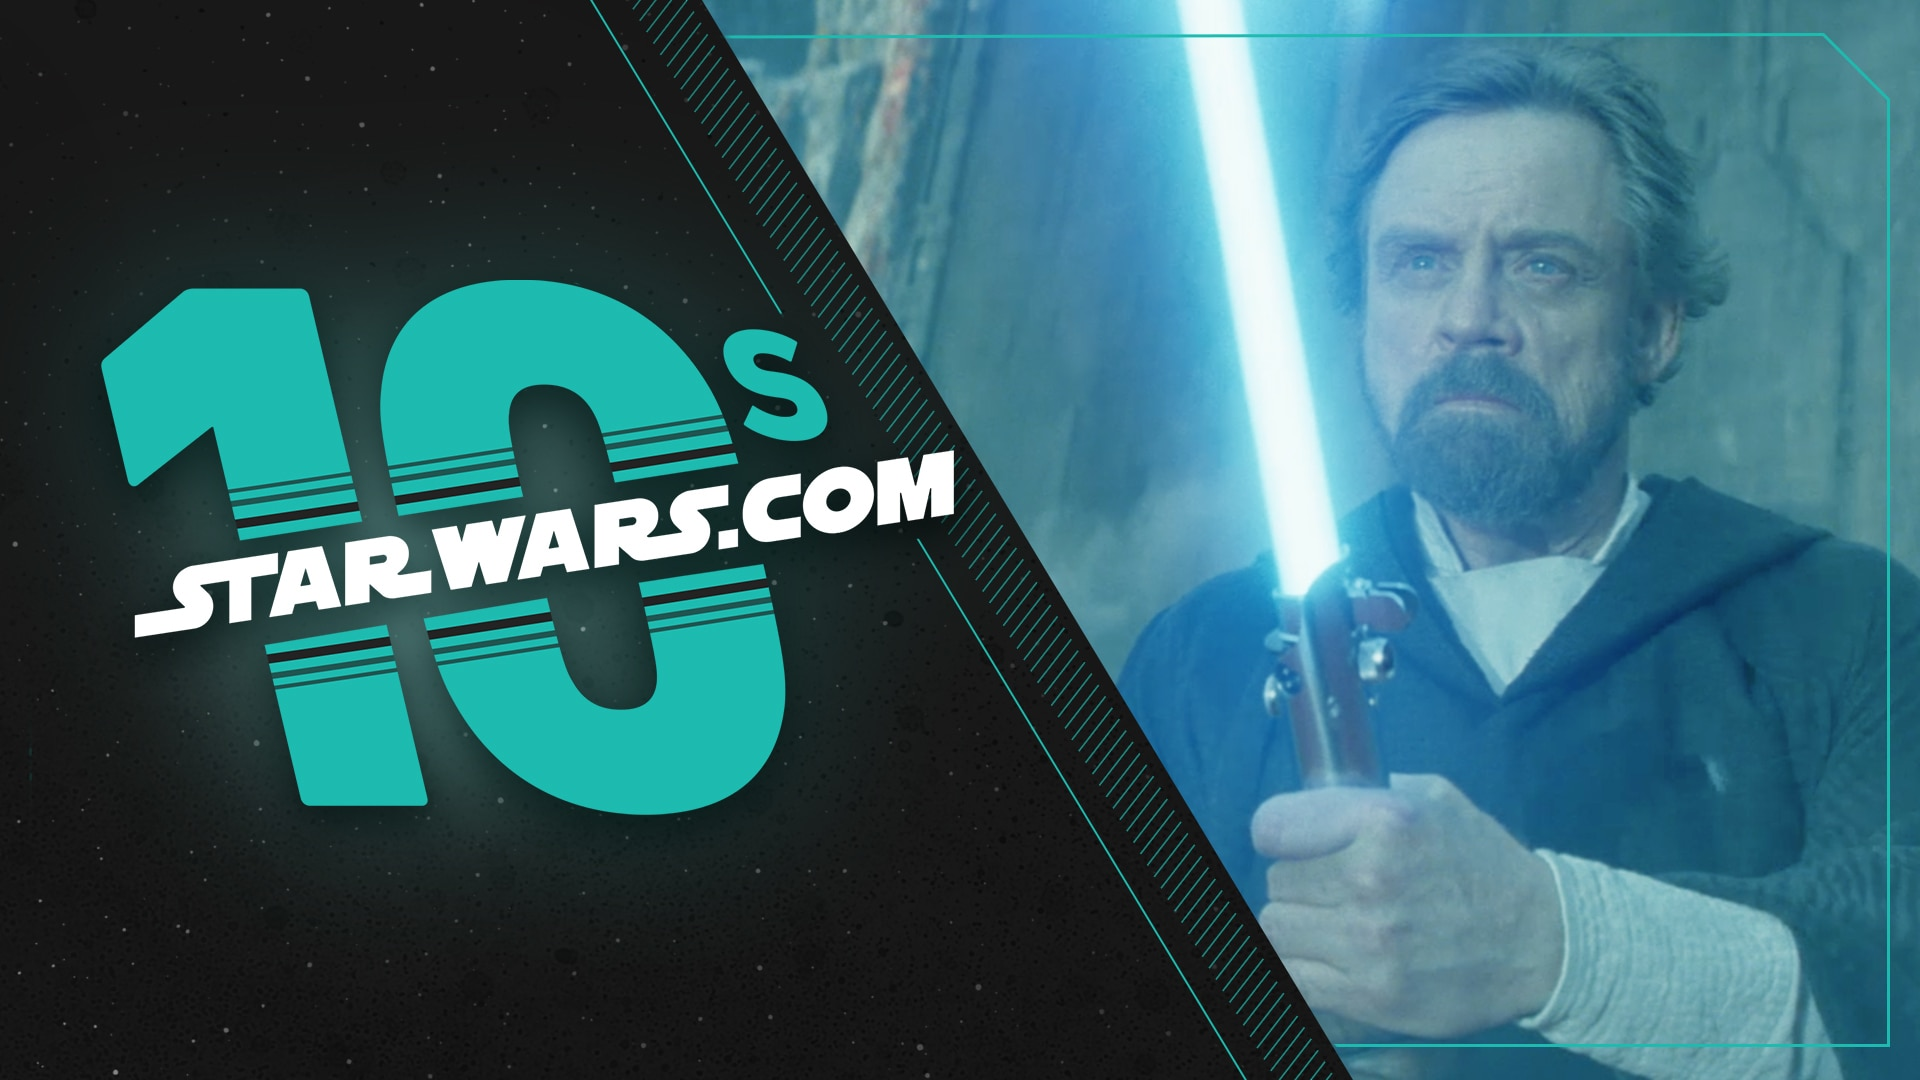 Top 10 Luke Skywalker Moments | The StarWars.com 10